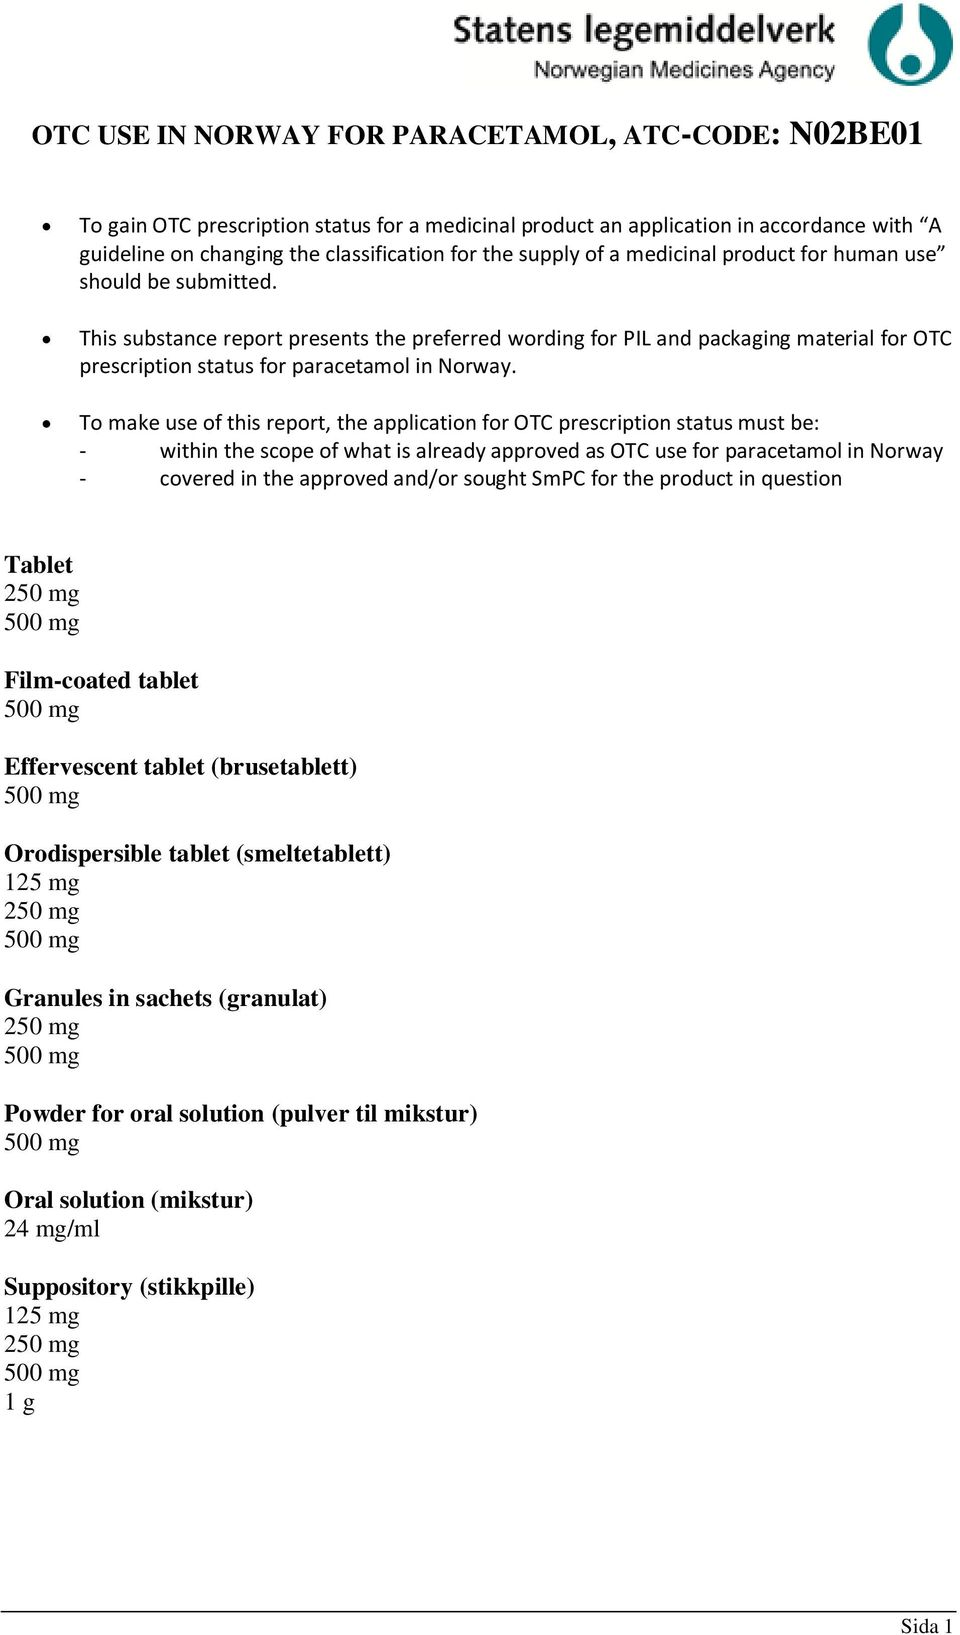 This substance report presents the preferred wording for PIL and packaging material for OTC prescription status for paracetamol in Norway.